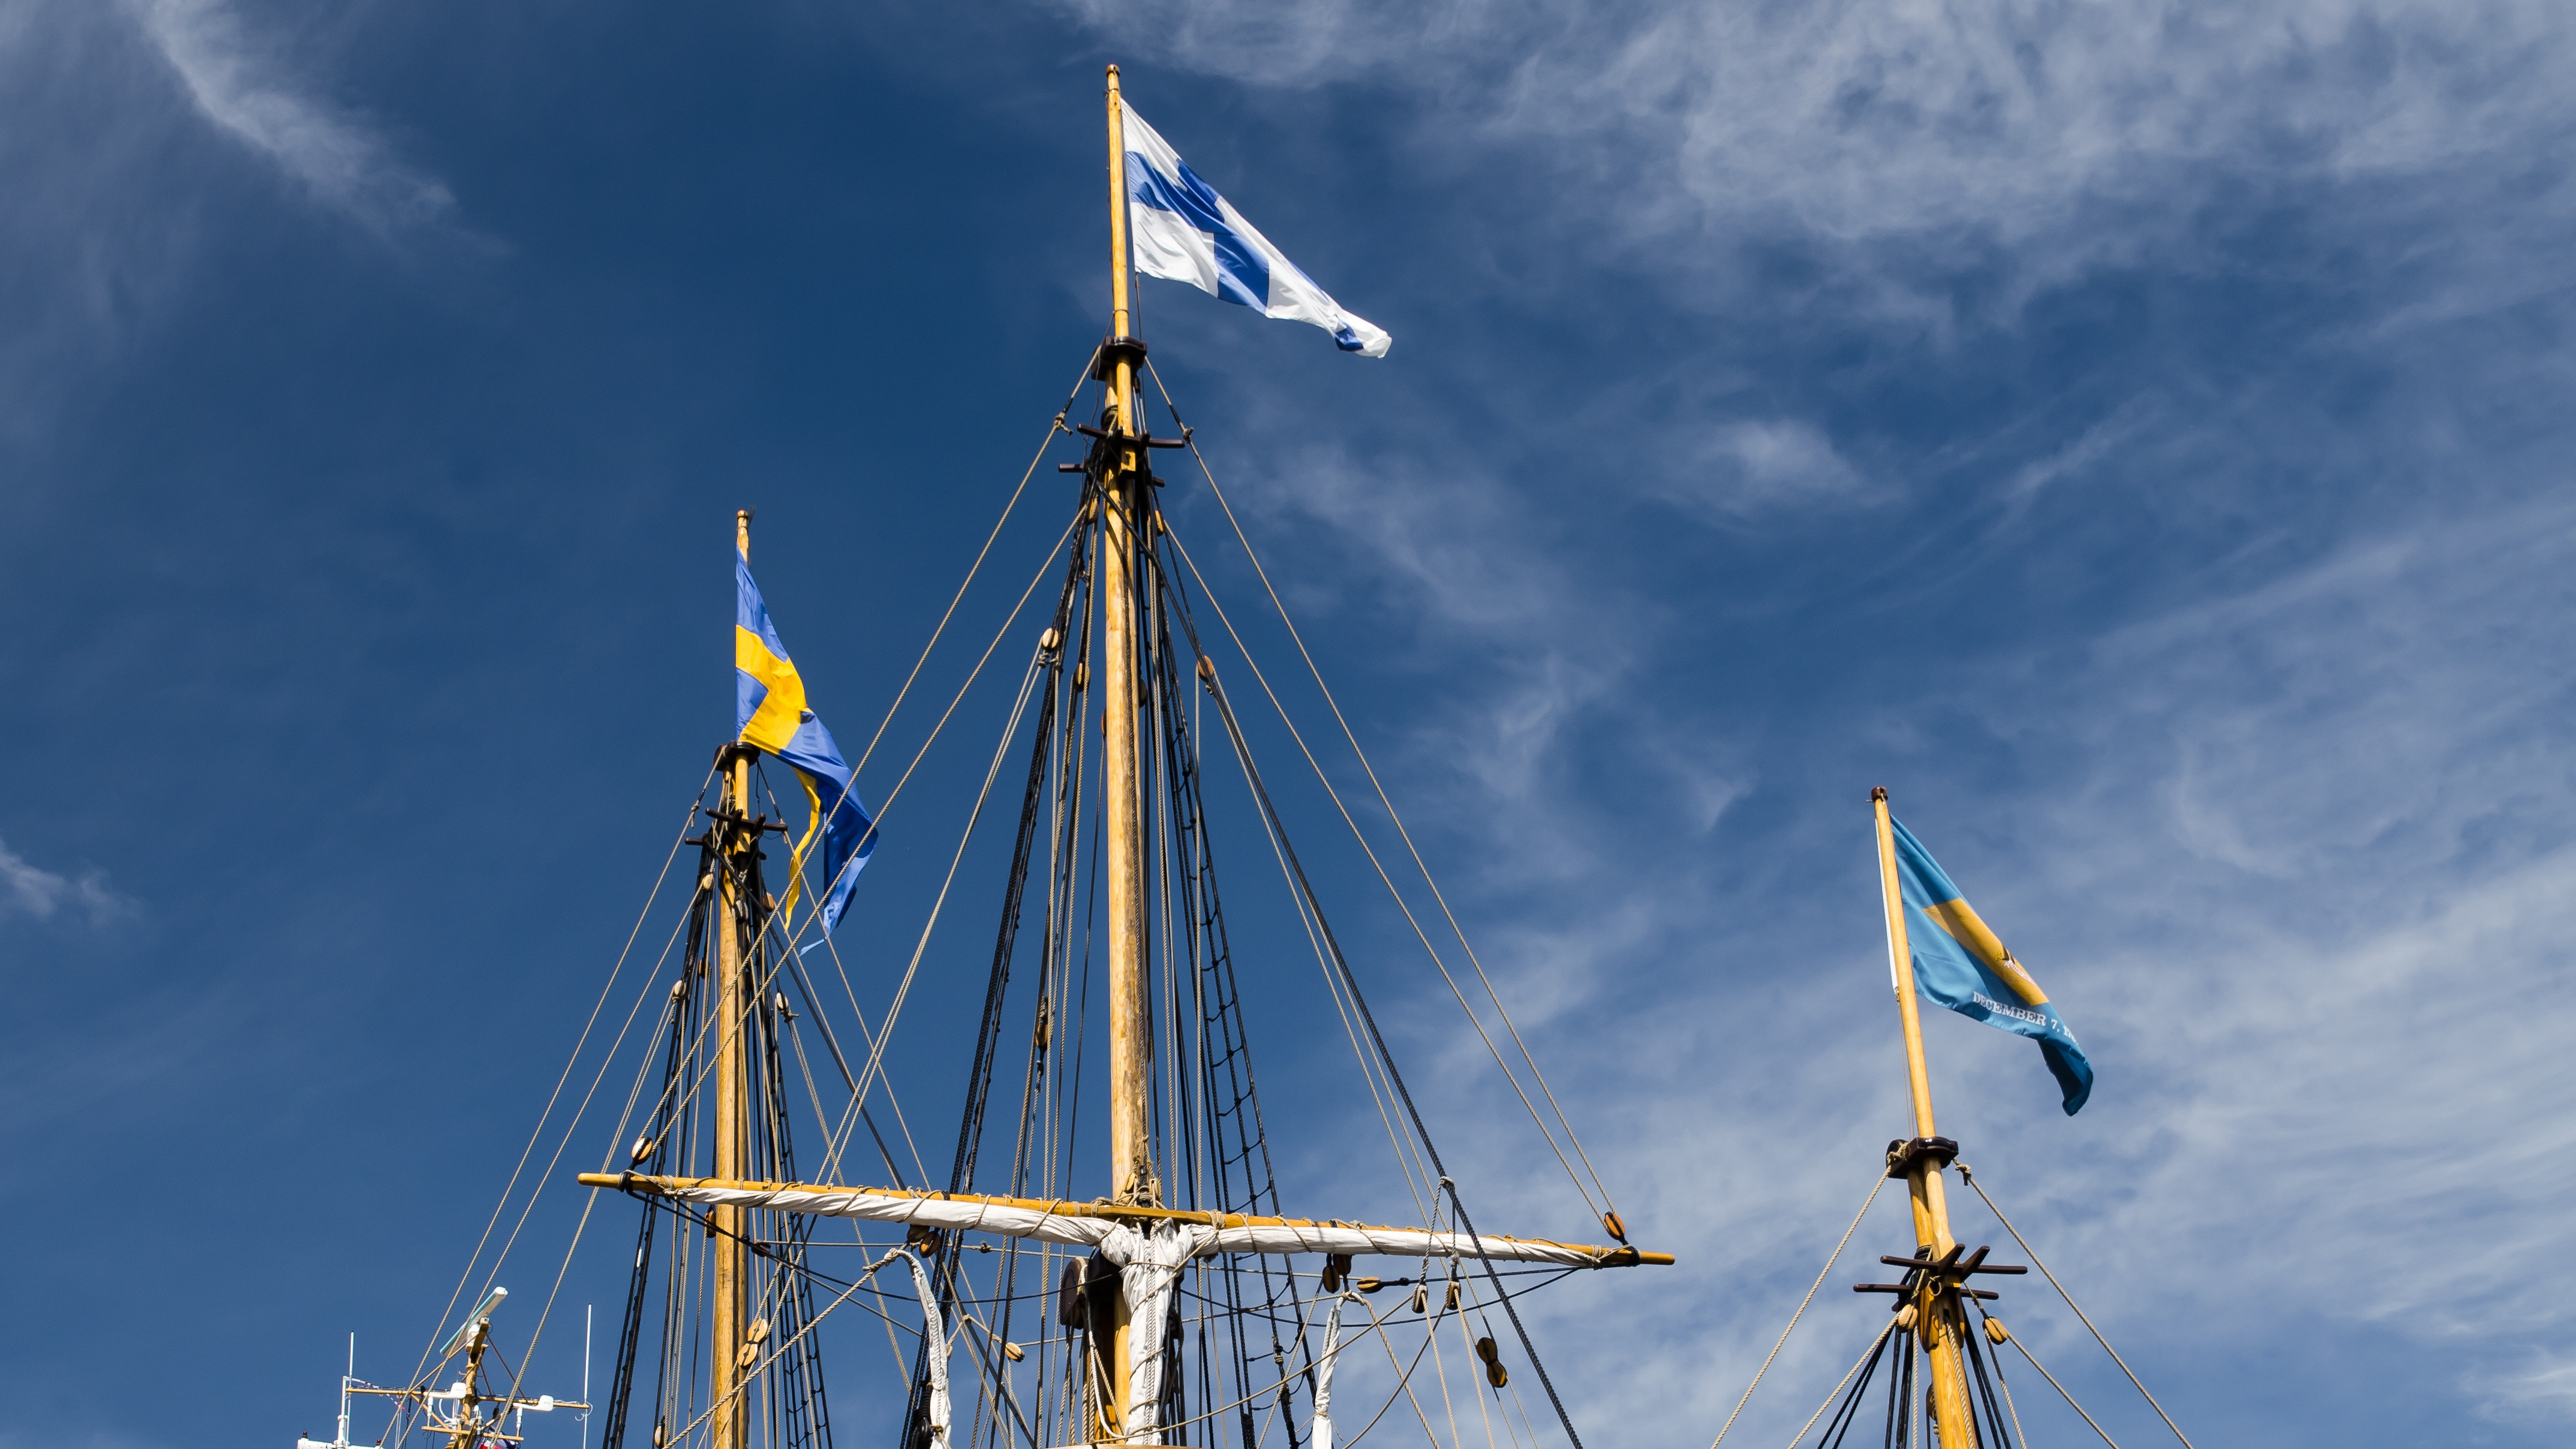 The Ship, Boat, Flag, Journey, Sea, HQ Photo